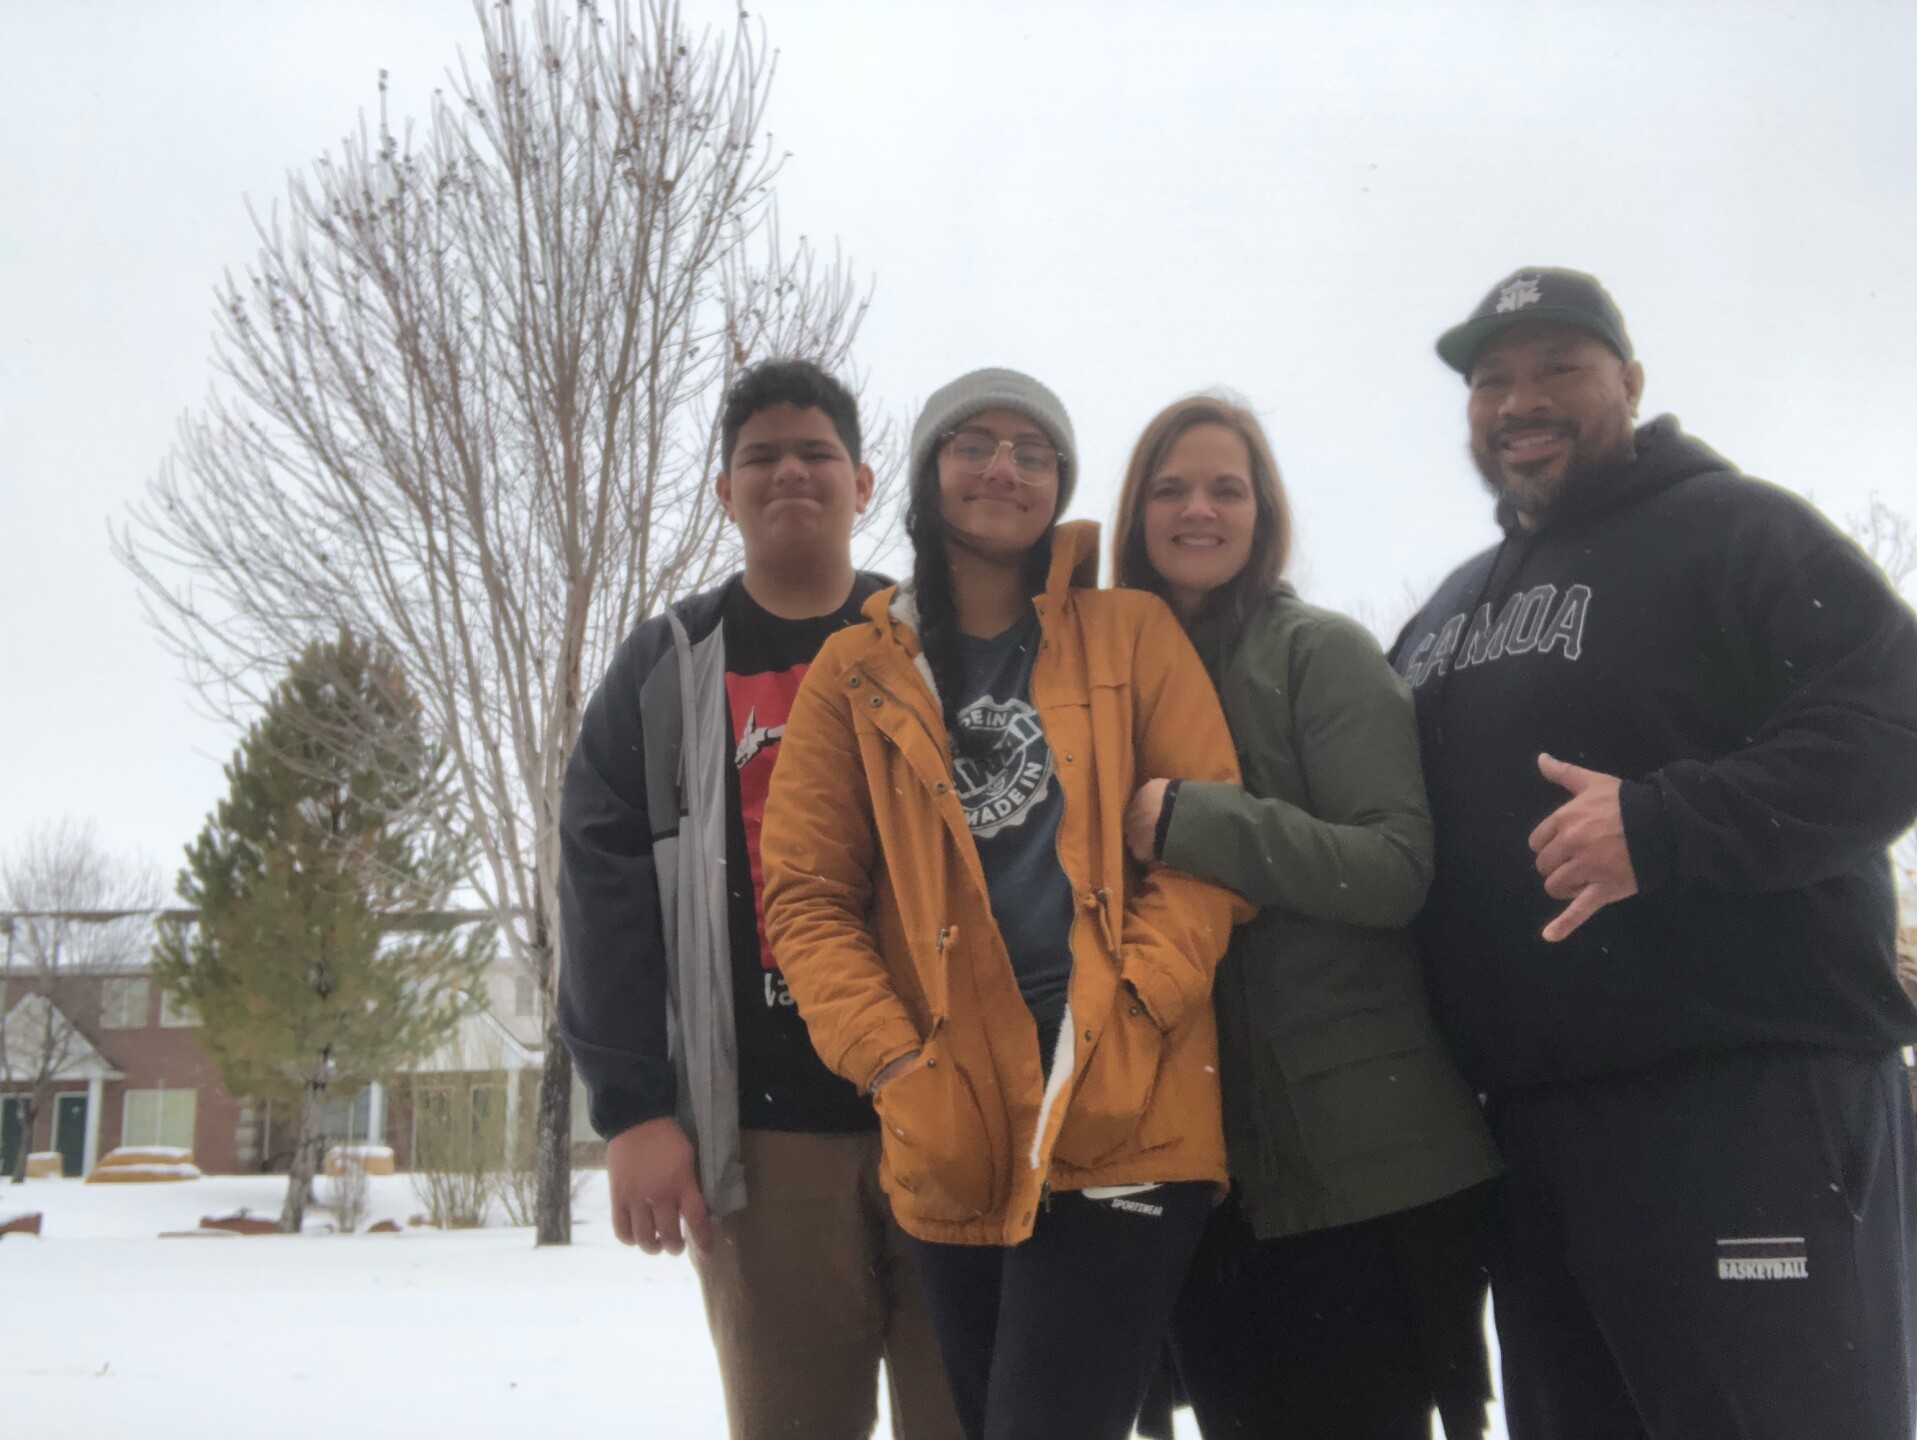 Photos: Big Budah's blog: 2019 off to a roaring start with tons of family time and newadventures.